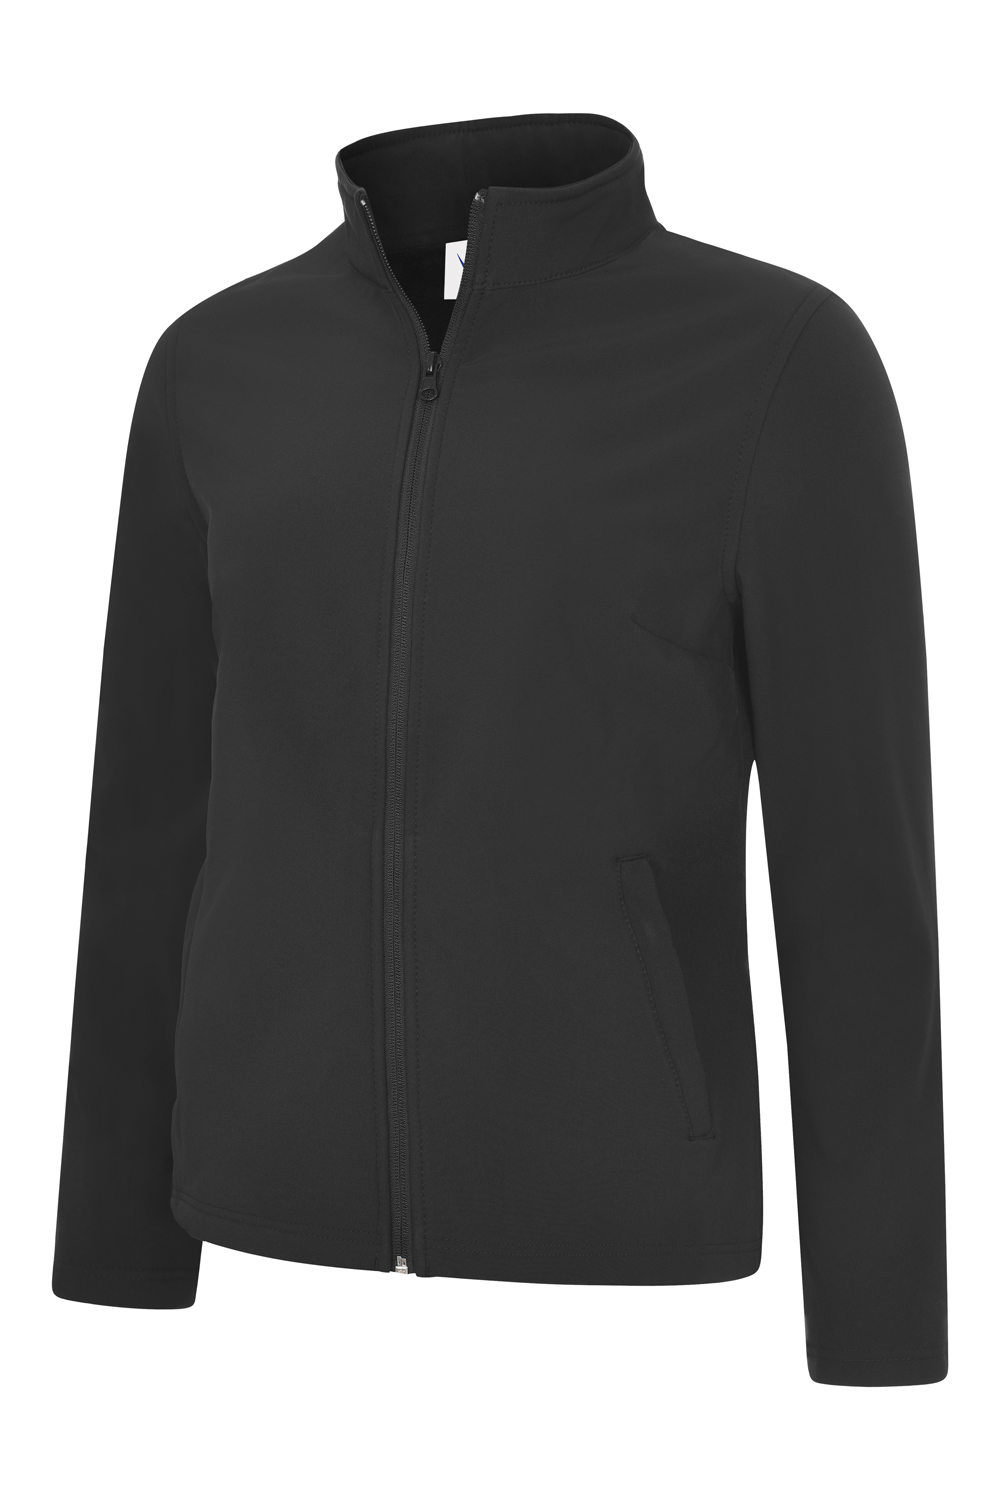 UNEEK UC613 LADIES CLASSIC SOFT-SHELL JACKET